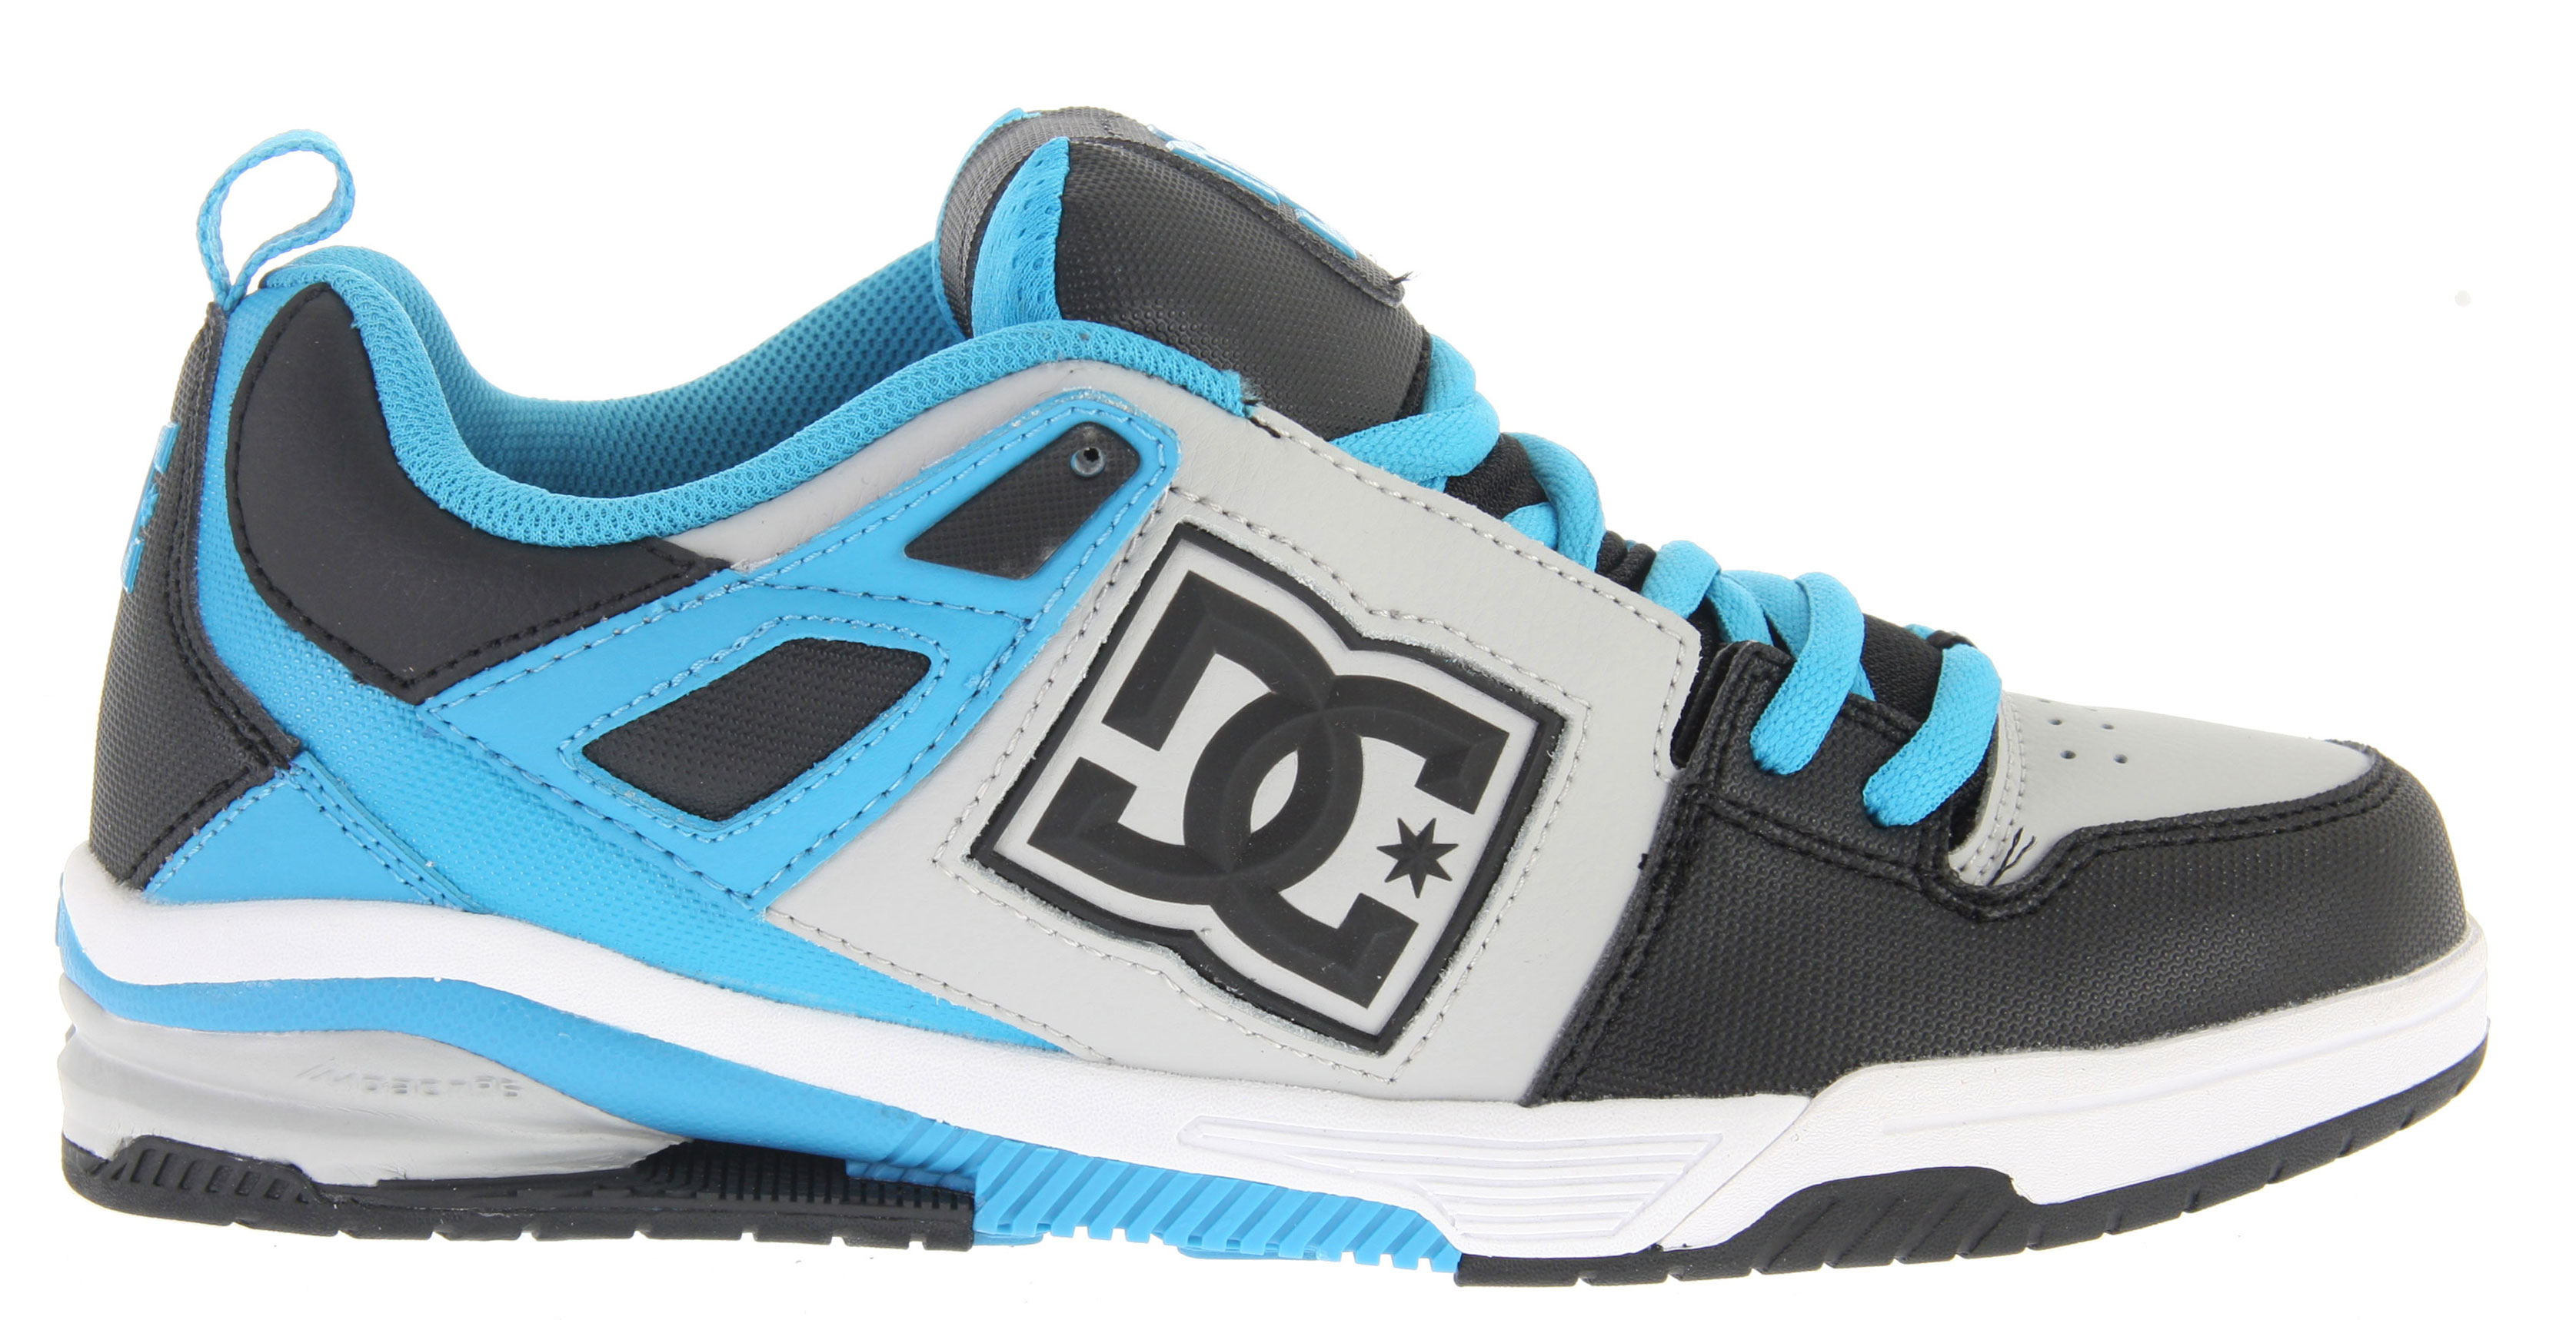 Skateboard Key Features of the DC Impact RS Skate Shoes: Composed of strategically placed columns for cushioning and rebound molded shank plate, and features Unilite for lightweight performance Dual Molded quarter logo piece Lightweight mesh tongue bottom Engineered Pill pattern in outsole for grip and control - $53.95